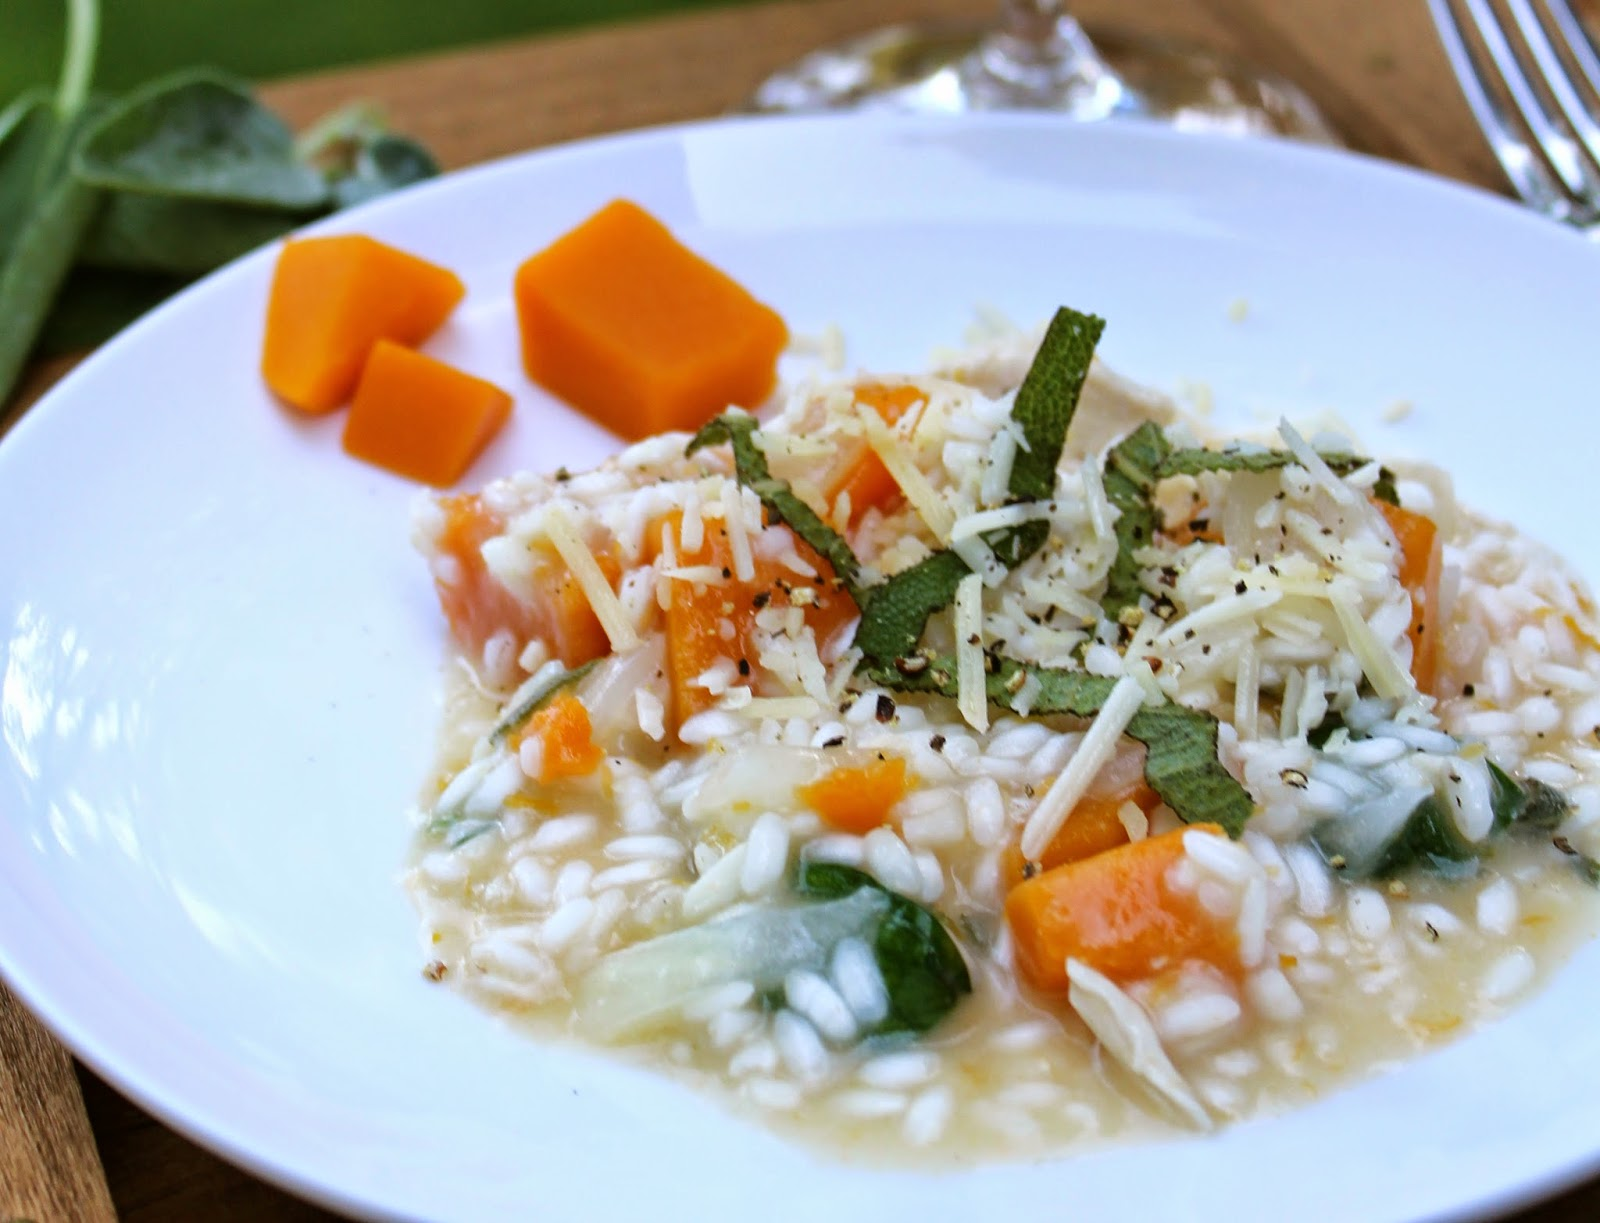 Risotto with Butternut Squash, Chicken and Sage for #SundaySupper.